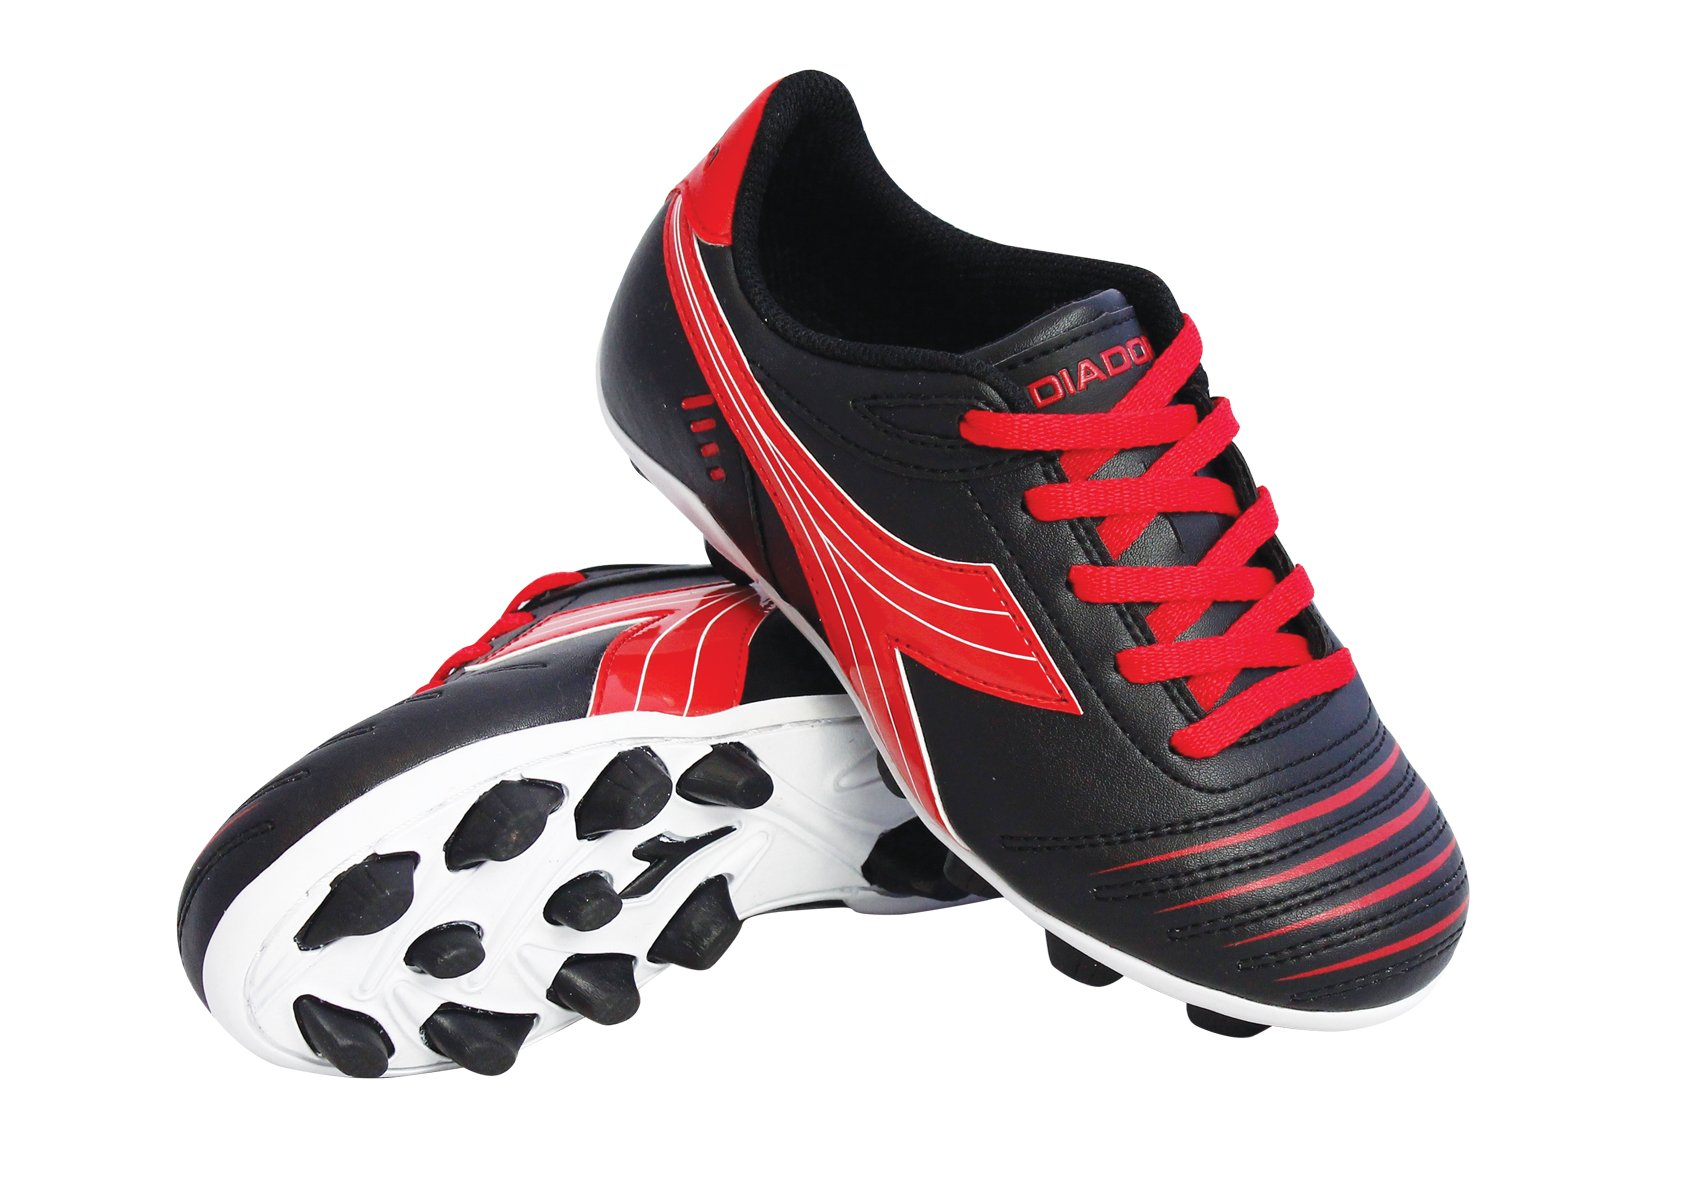 Diadora Kid's Cattura MD JR Soccer Cleats (9 M US Toddler, Black/Red)